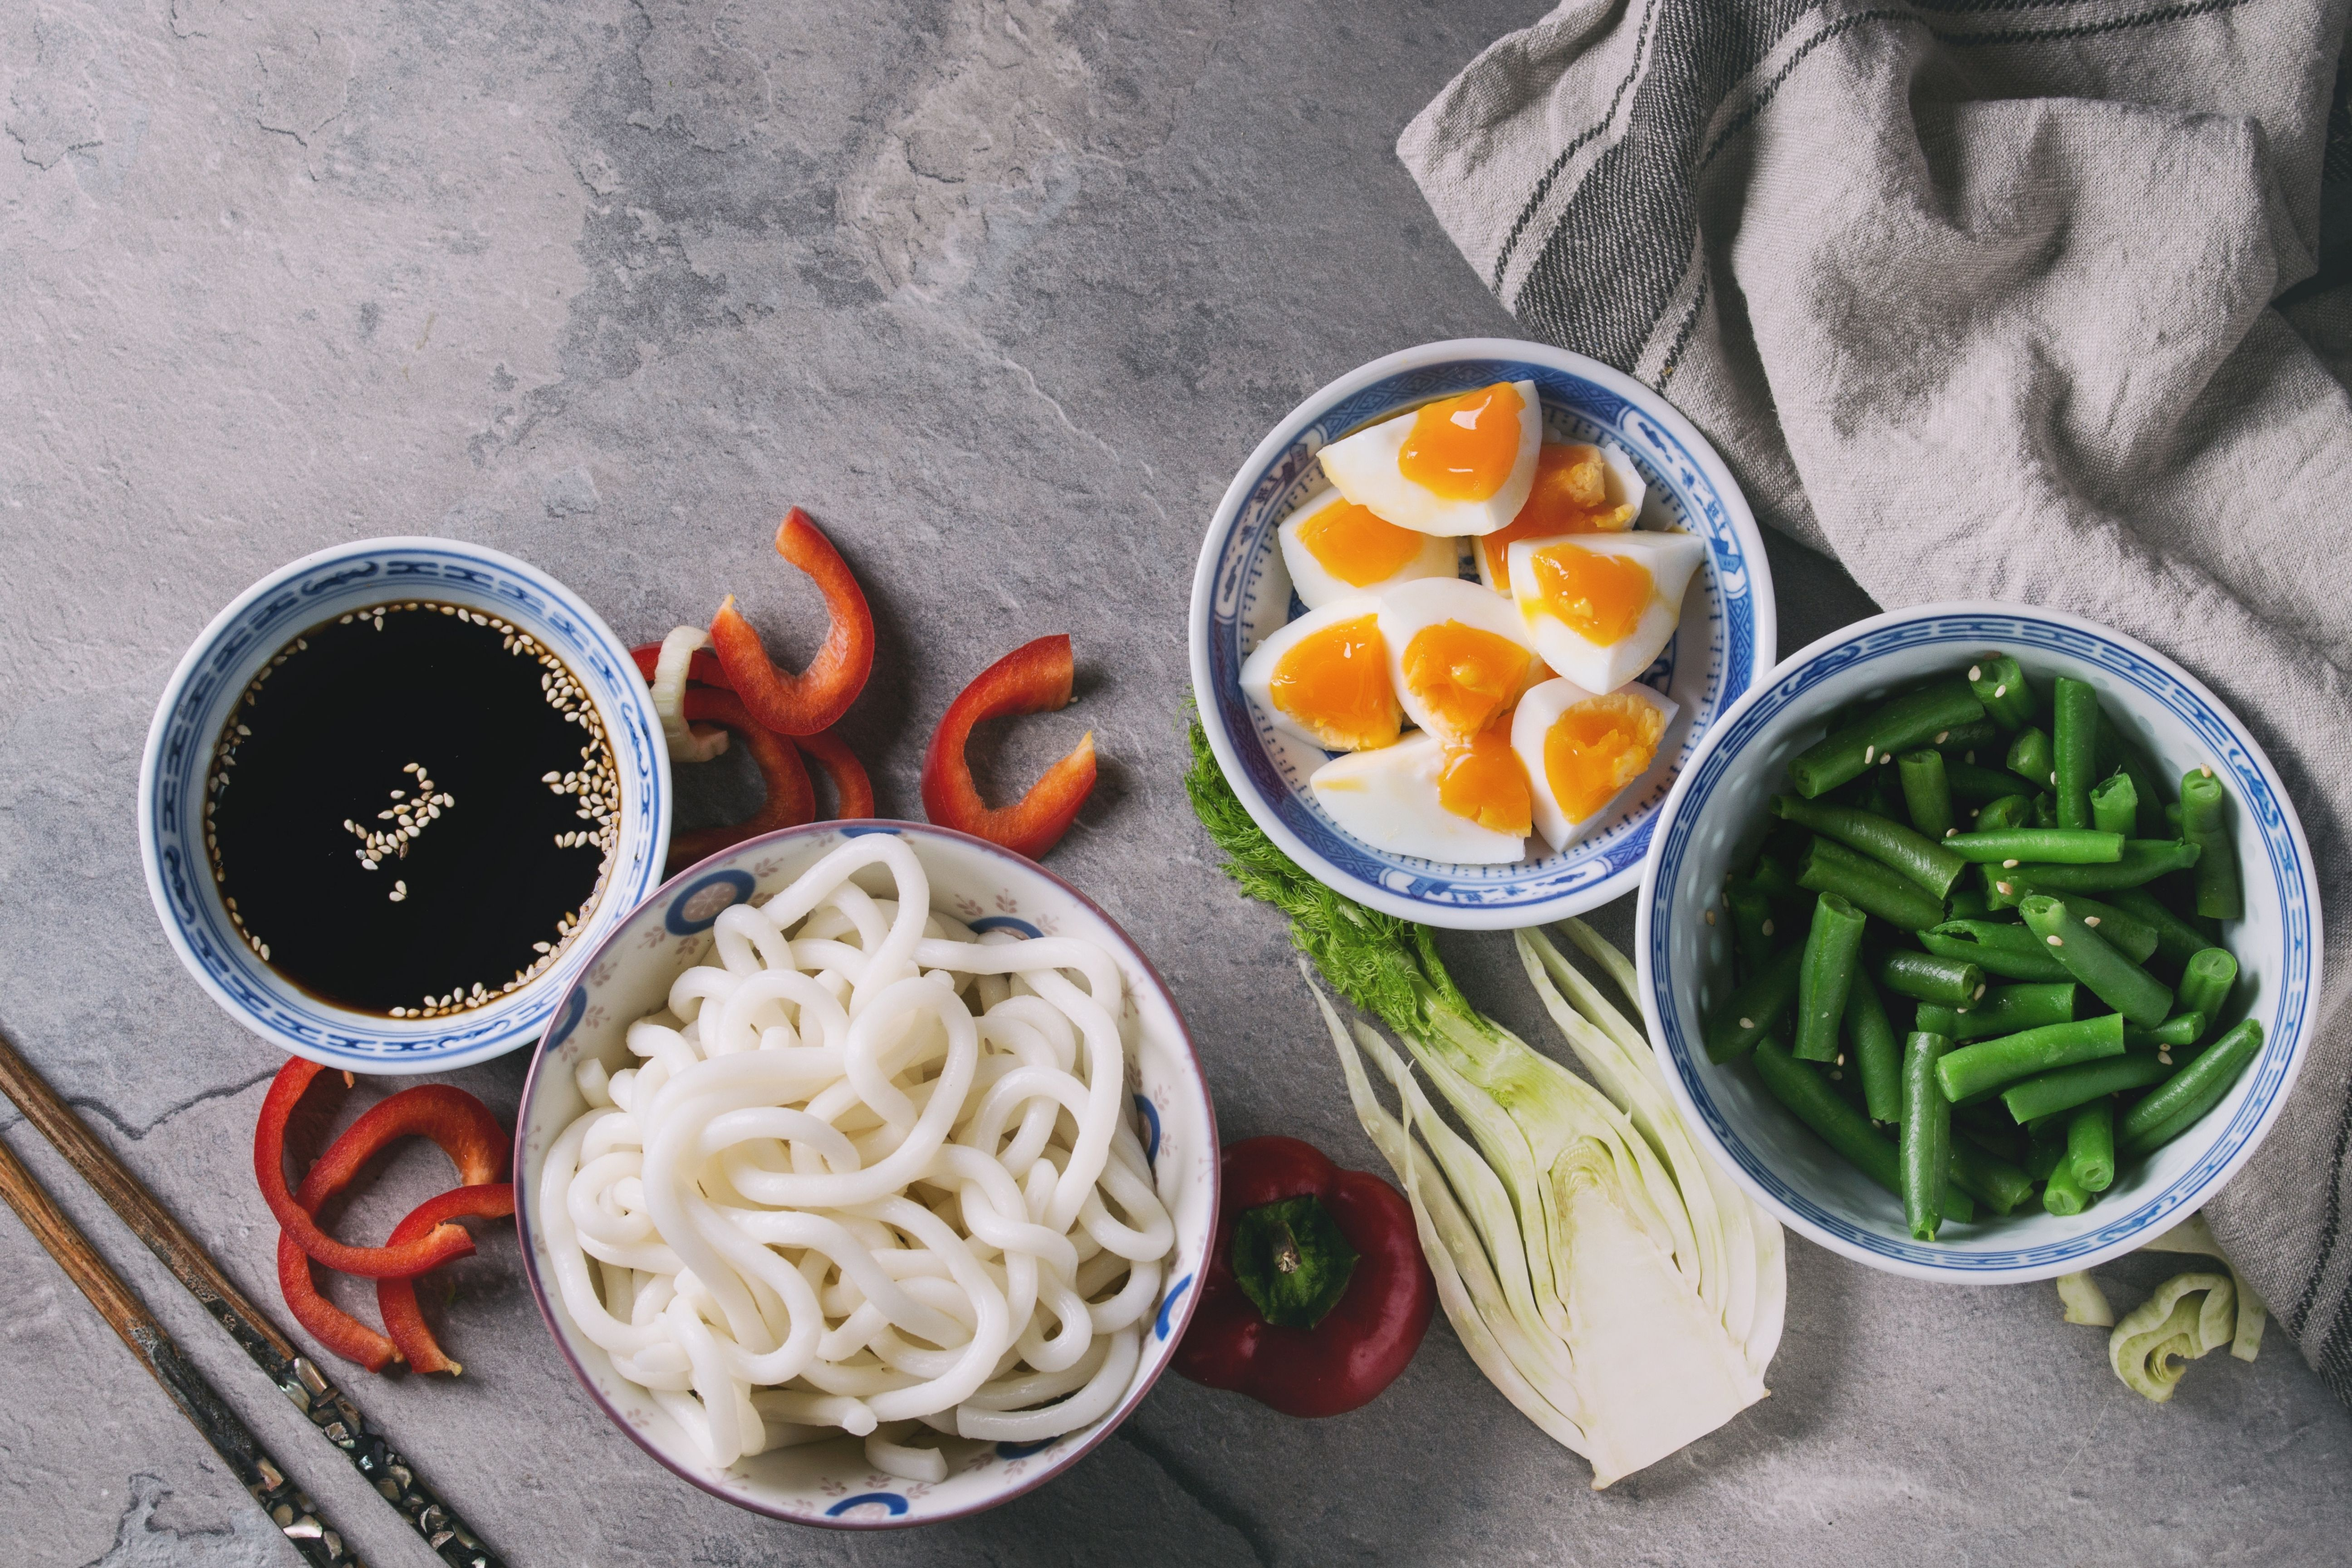 What Is America's Favorite Side Dish For Stir Fry